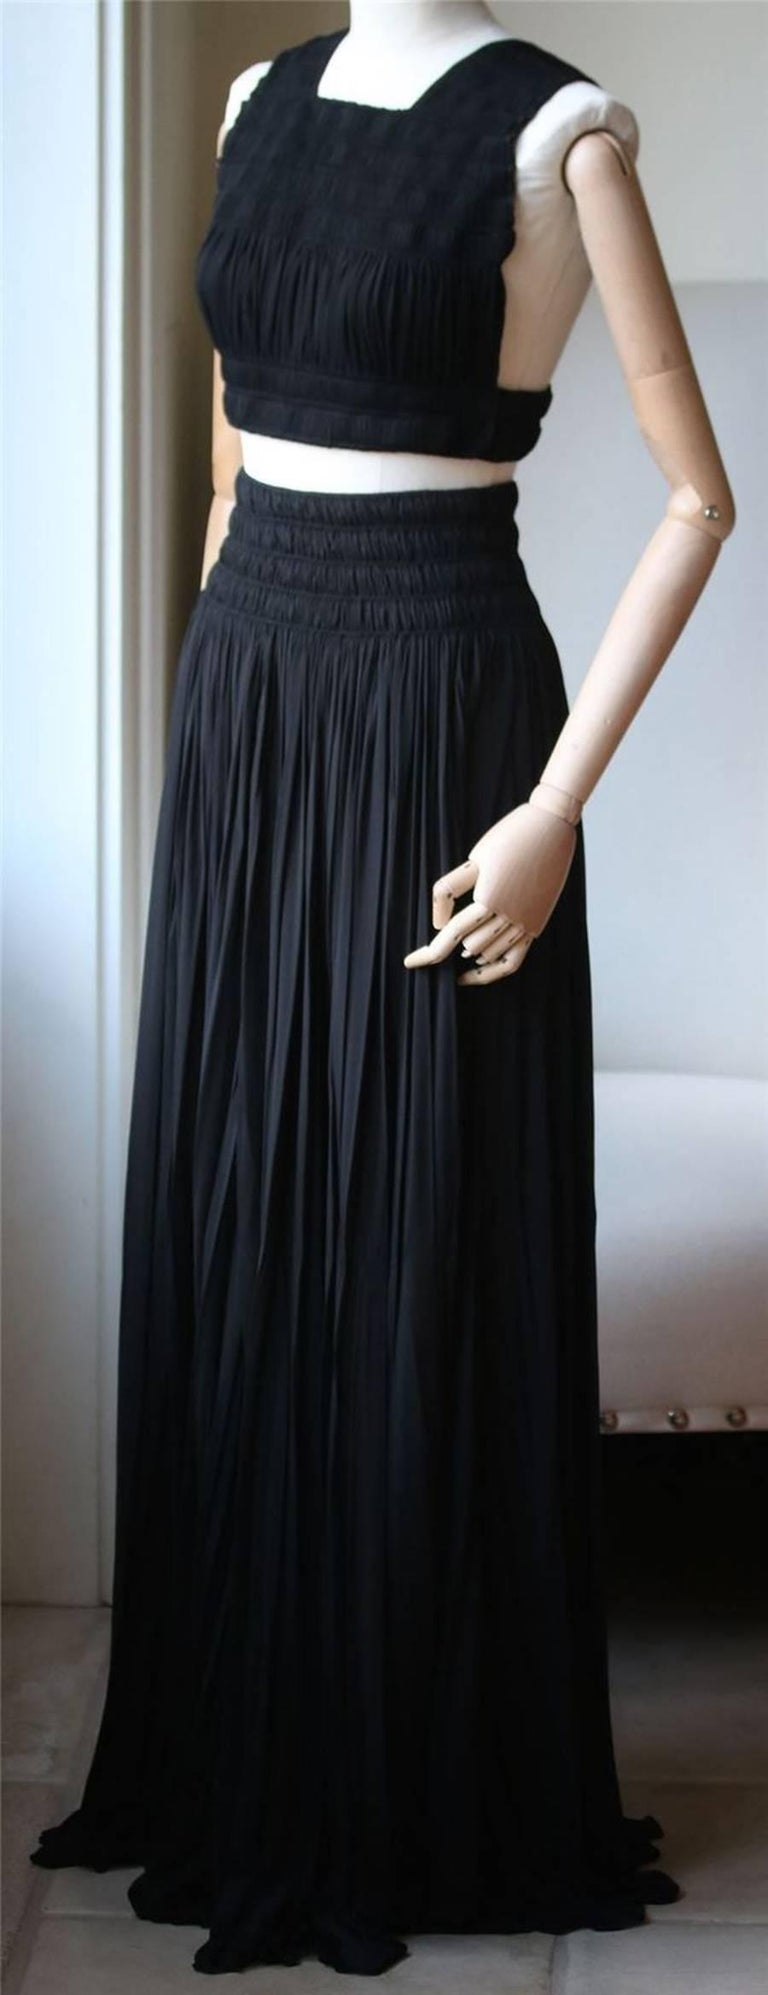 Versatile maxi skirt and top from Alaia. Ruched racerback crop top. Full length. Stretch waist with ruched detail. Pulls on. Unlined.   Size: Top: FR 40 (UK 12, US 8, IT 44). Comes up small. Skirt: FR 38 (UK 10, US 6, IT 42). Comes up